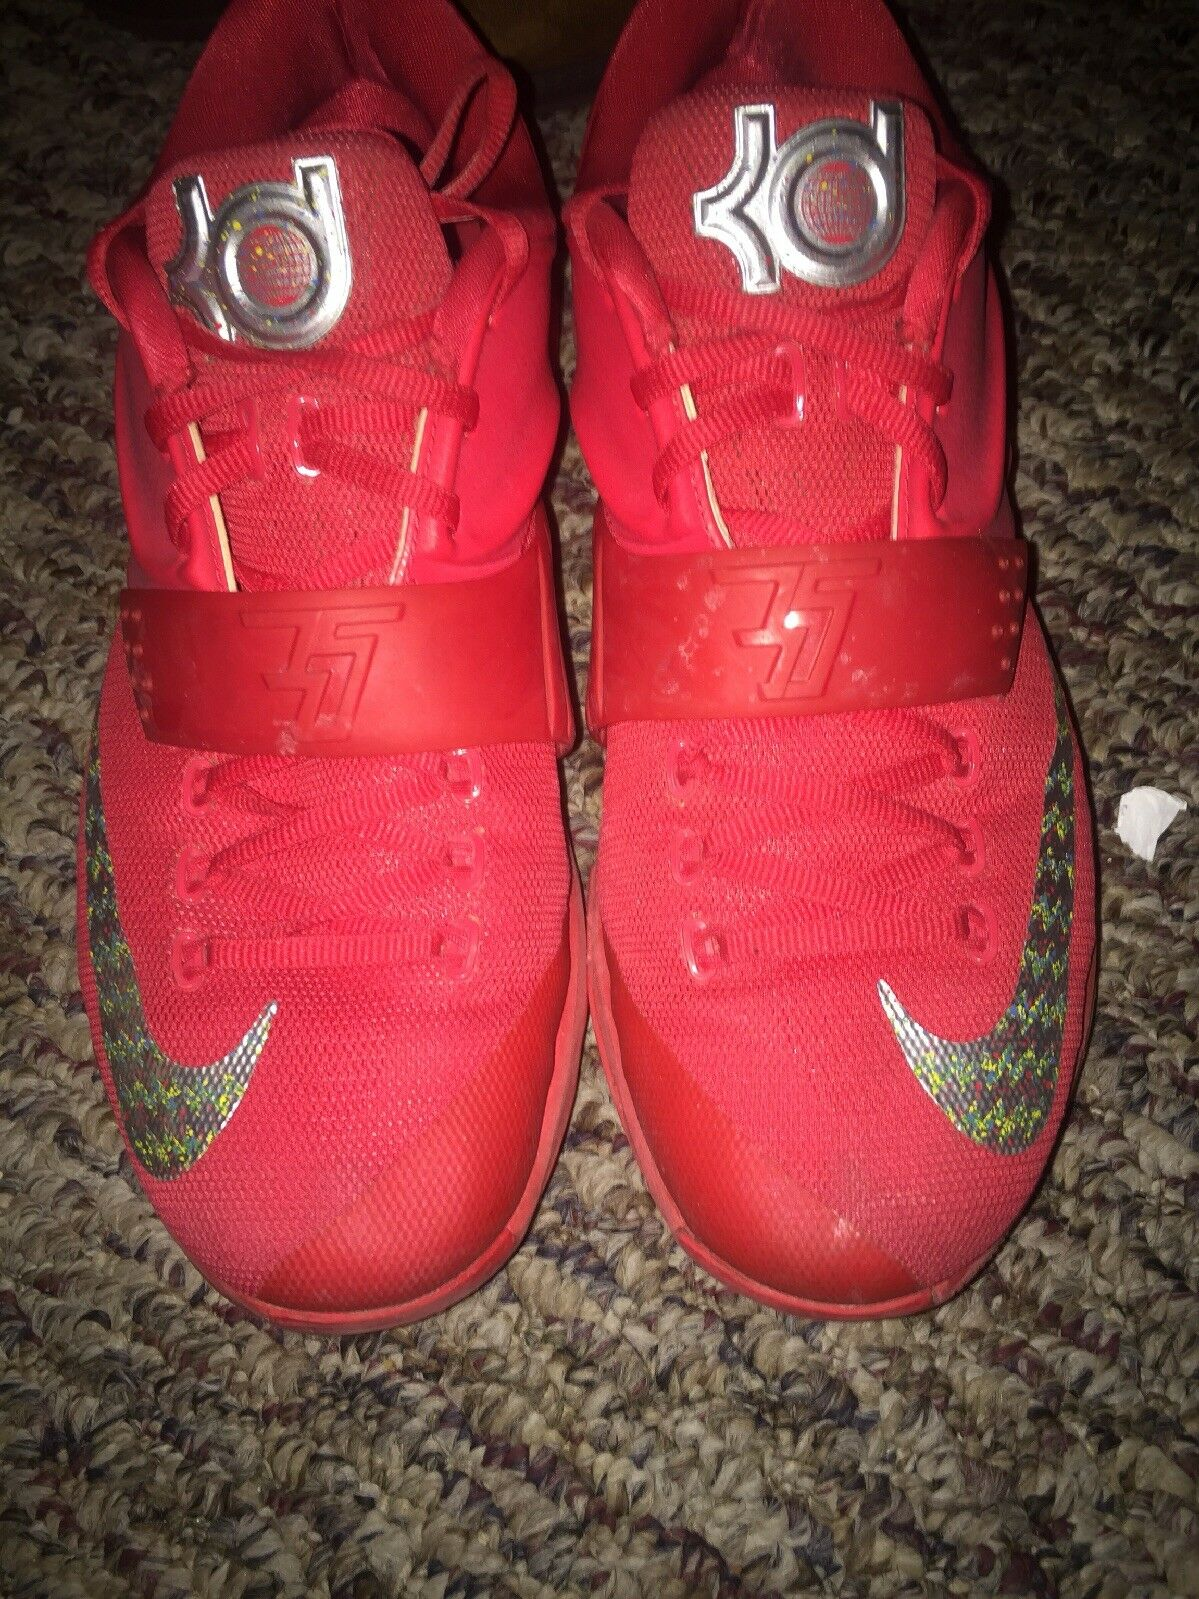 Nike KD VII SIZE 7 GLOBAL GAME RED SIZE VII 11 1a0ffb